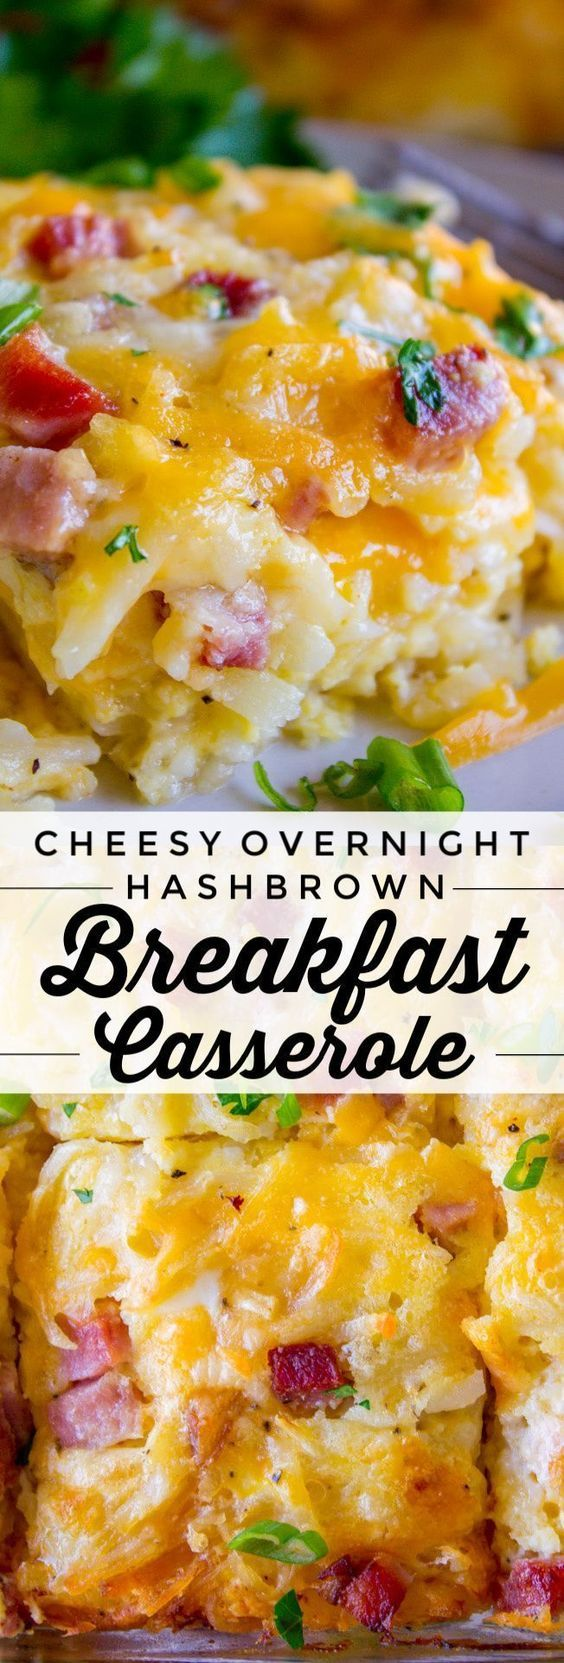 Cheesy Overnight Hashbrown Breakfast Casserole